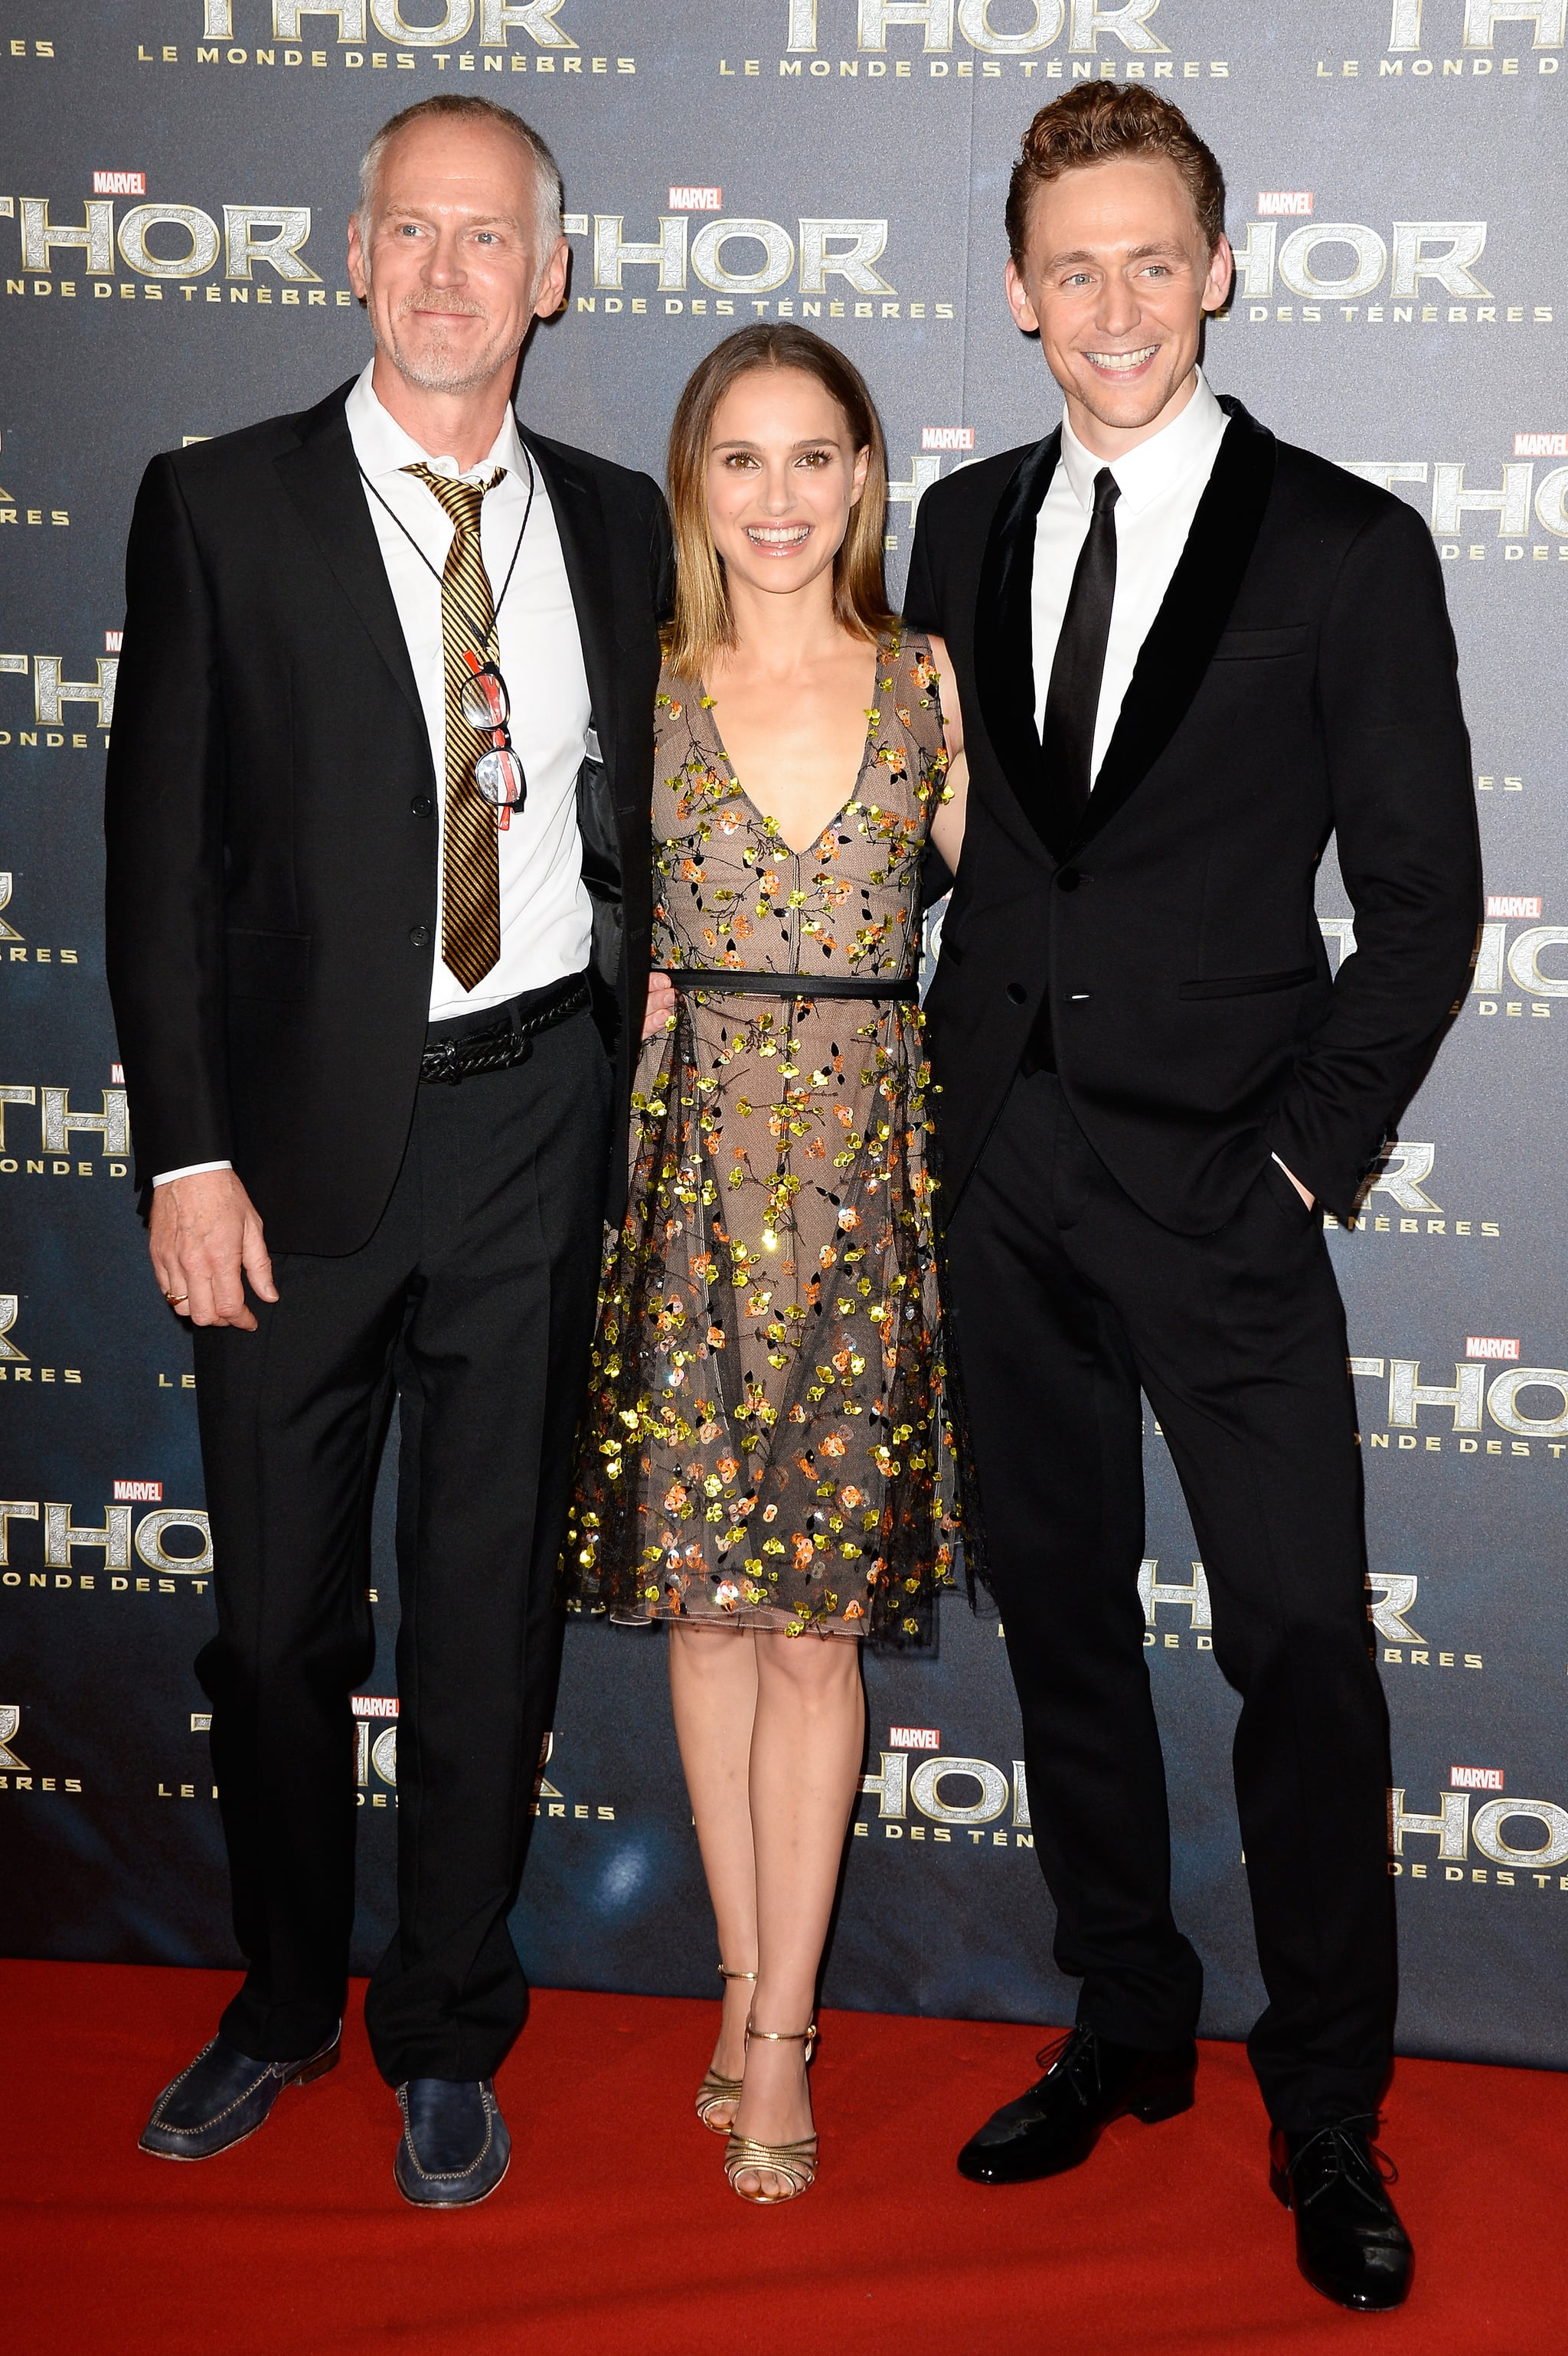 Director Alan Taylor joined Natalie Portman and Tom Hiddleston on the red carpet at the Paris premiere of Thor: The Dark World on Wednesday.